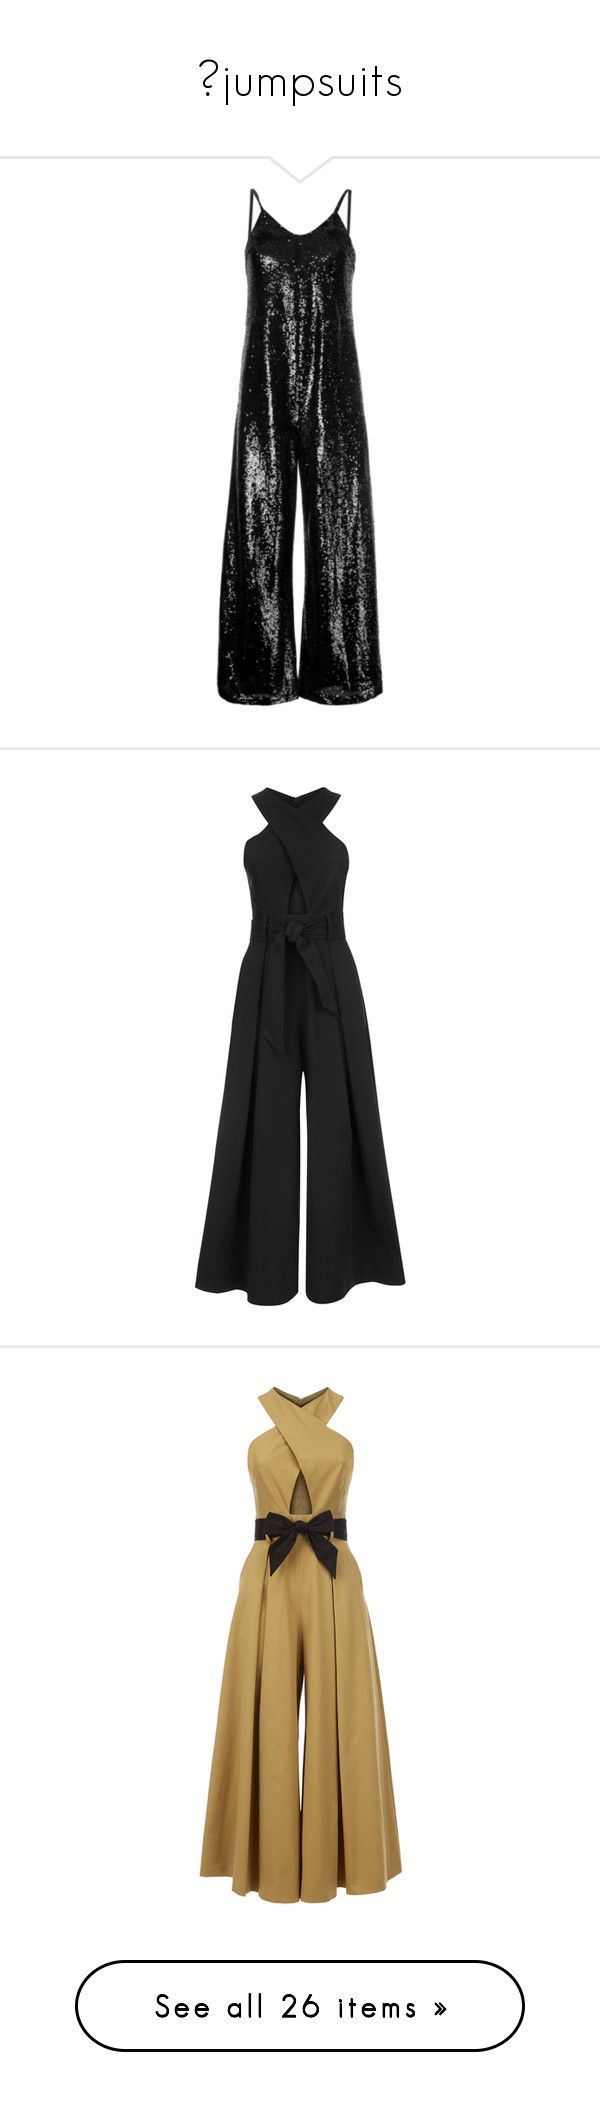 """""""✖jumpsuits"""" by alexisainsworth ❤ liked on Polyvore featuring jumpsuits, black, cami jumpsuit, sequin camisole, polyester camisole, sequin jump suit, sequin jumpsuit, jump suit, tailored jumpsuit and temperley london jumpsuit"""